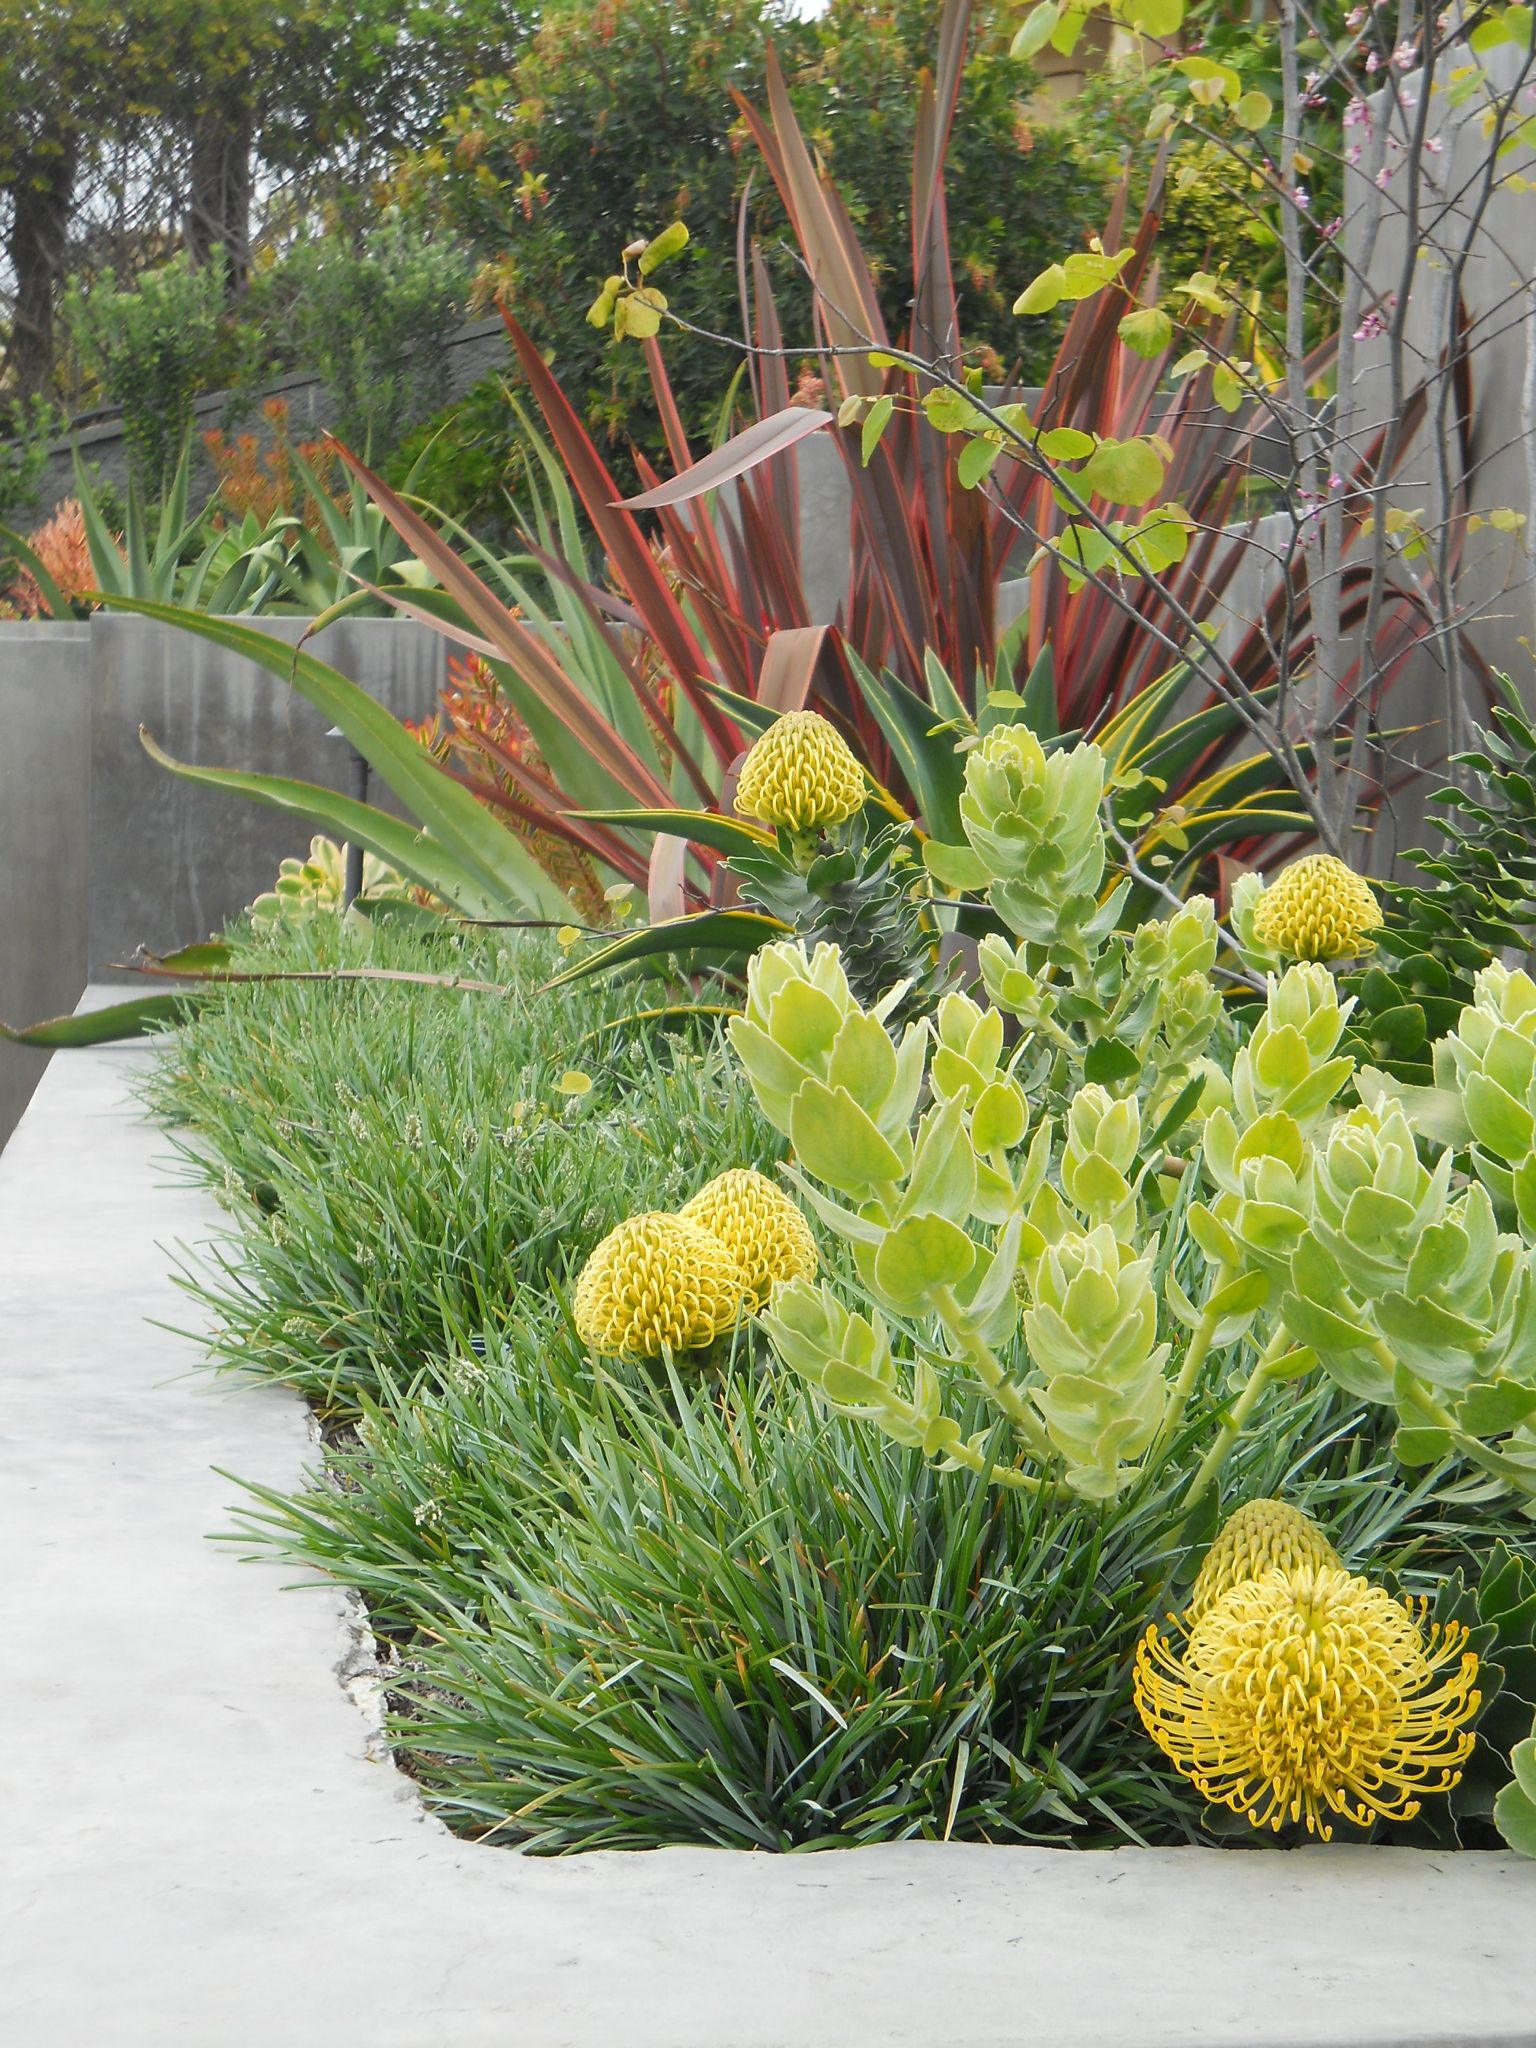 Protea Yellow Pin Cushion And Sesleria Grass In My Garden